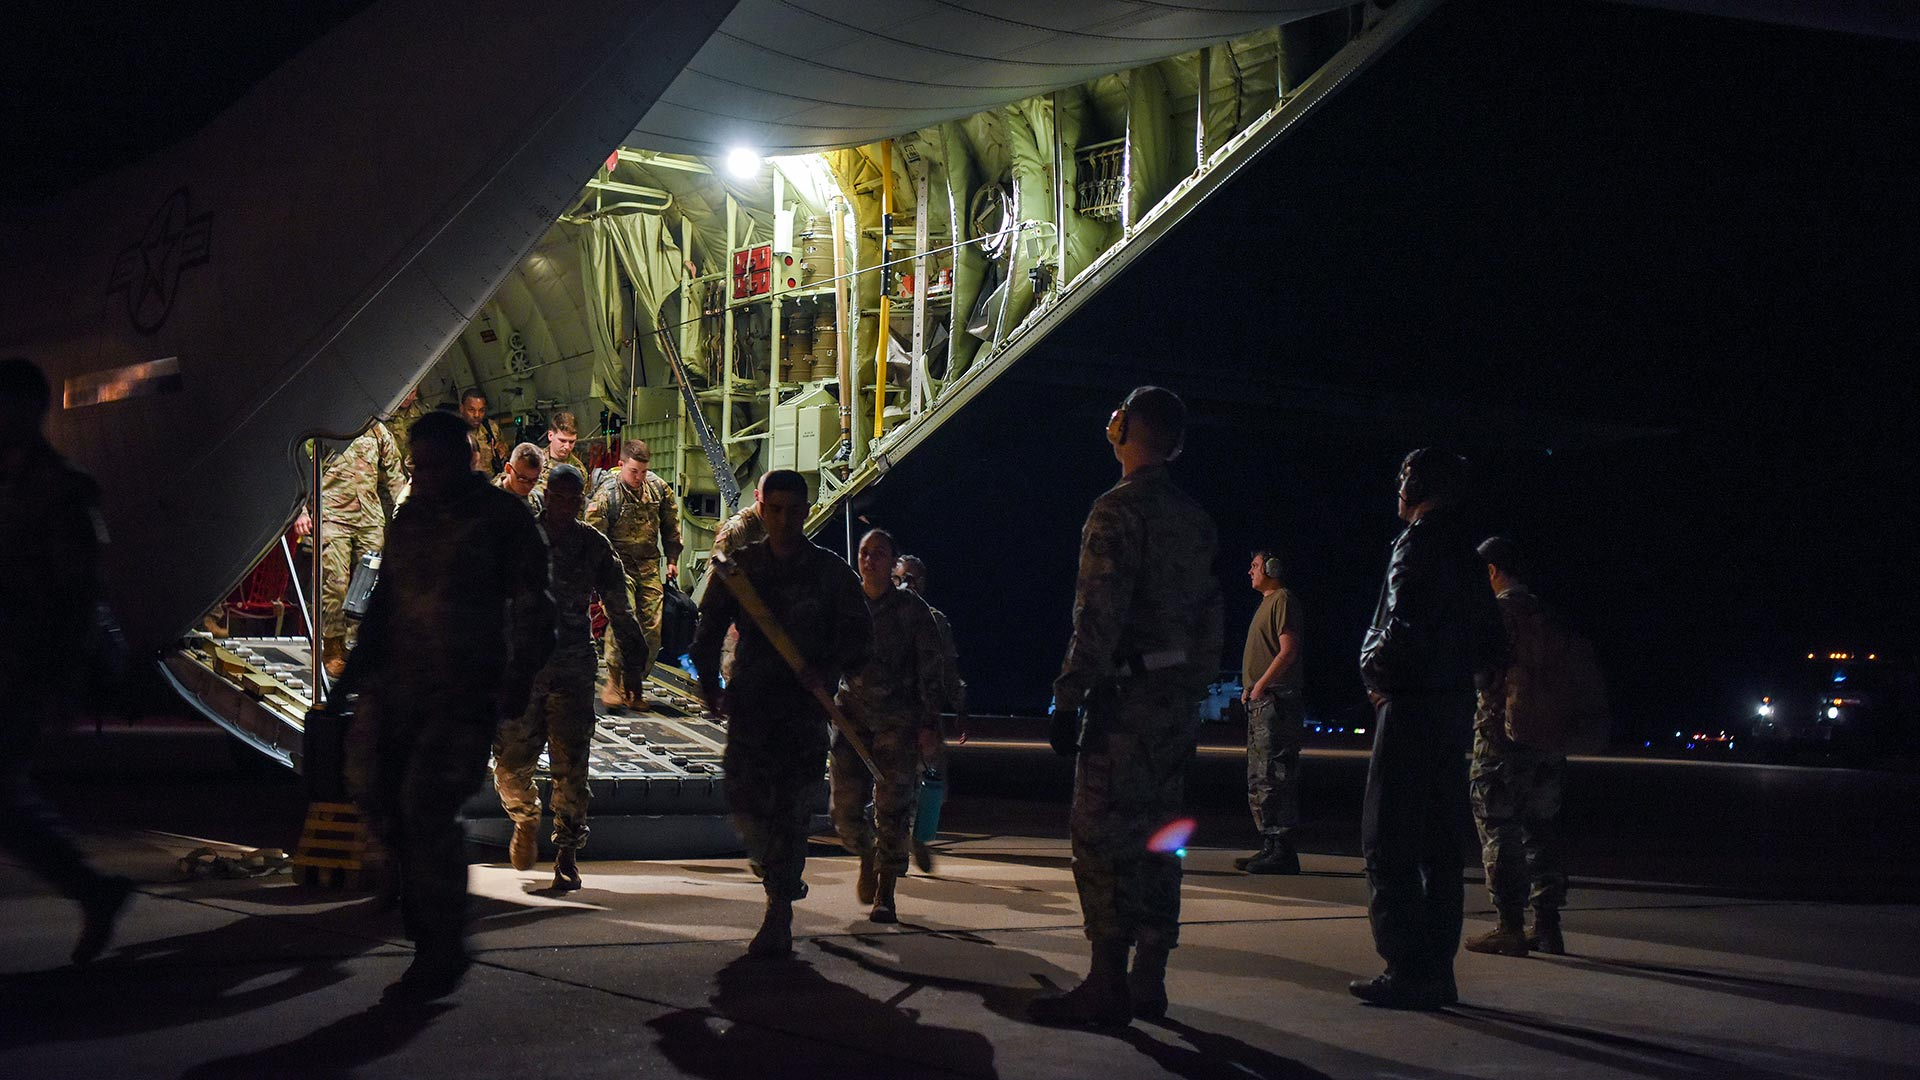 U.S. Army Soldiers out of Fort Bragg, North Carolina, arrive at Davis-Monthan Air Force Base, Nov. 2, 2018, as part of Operation Faithful Patriot.